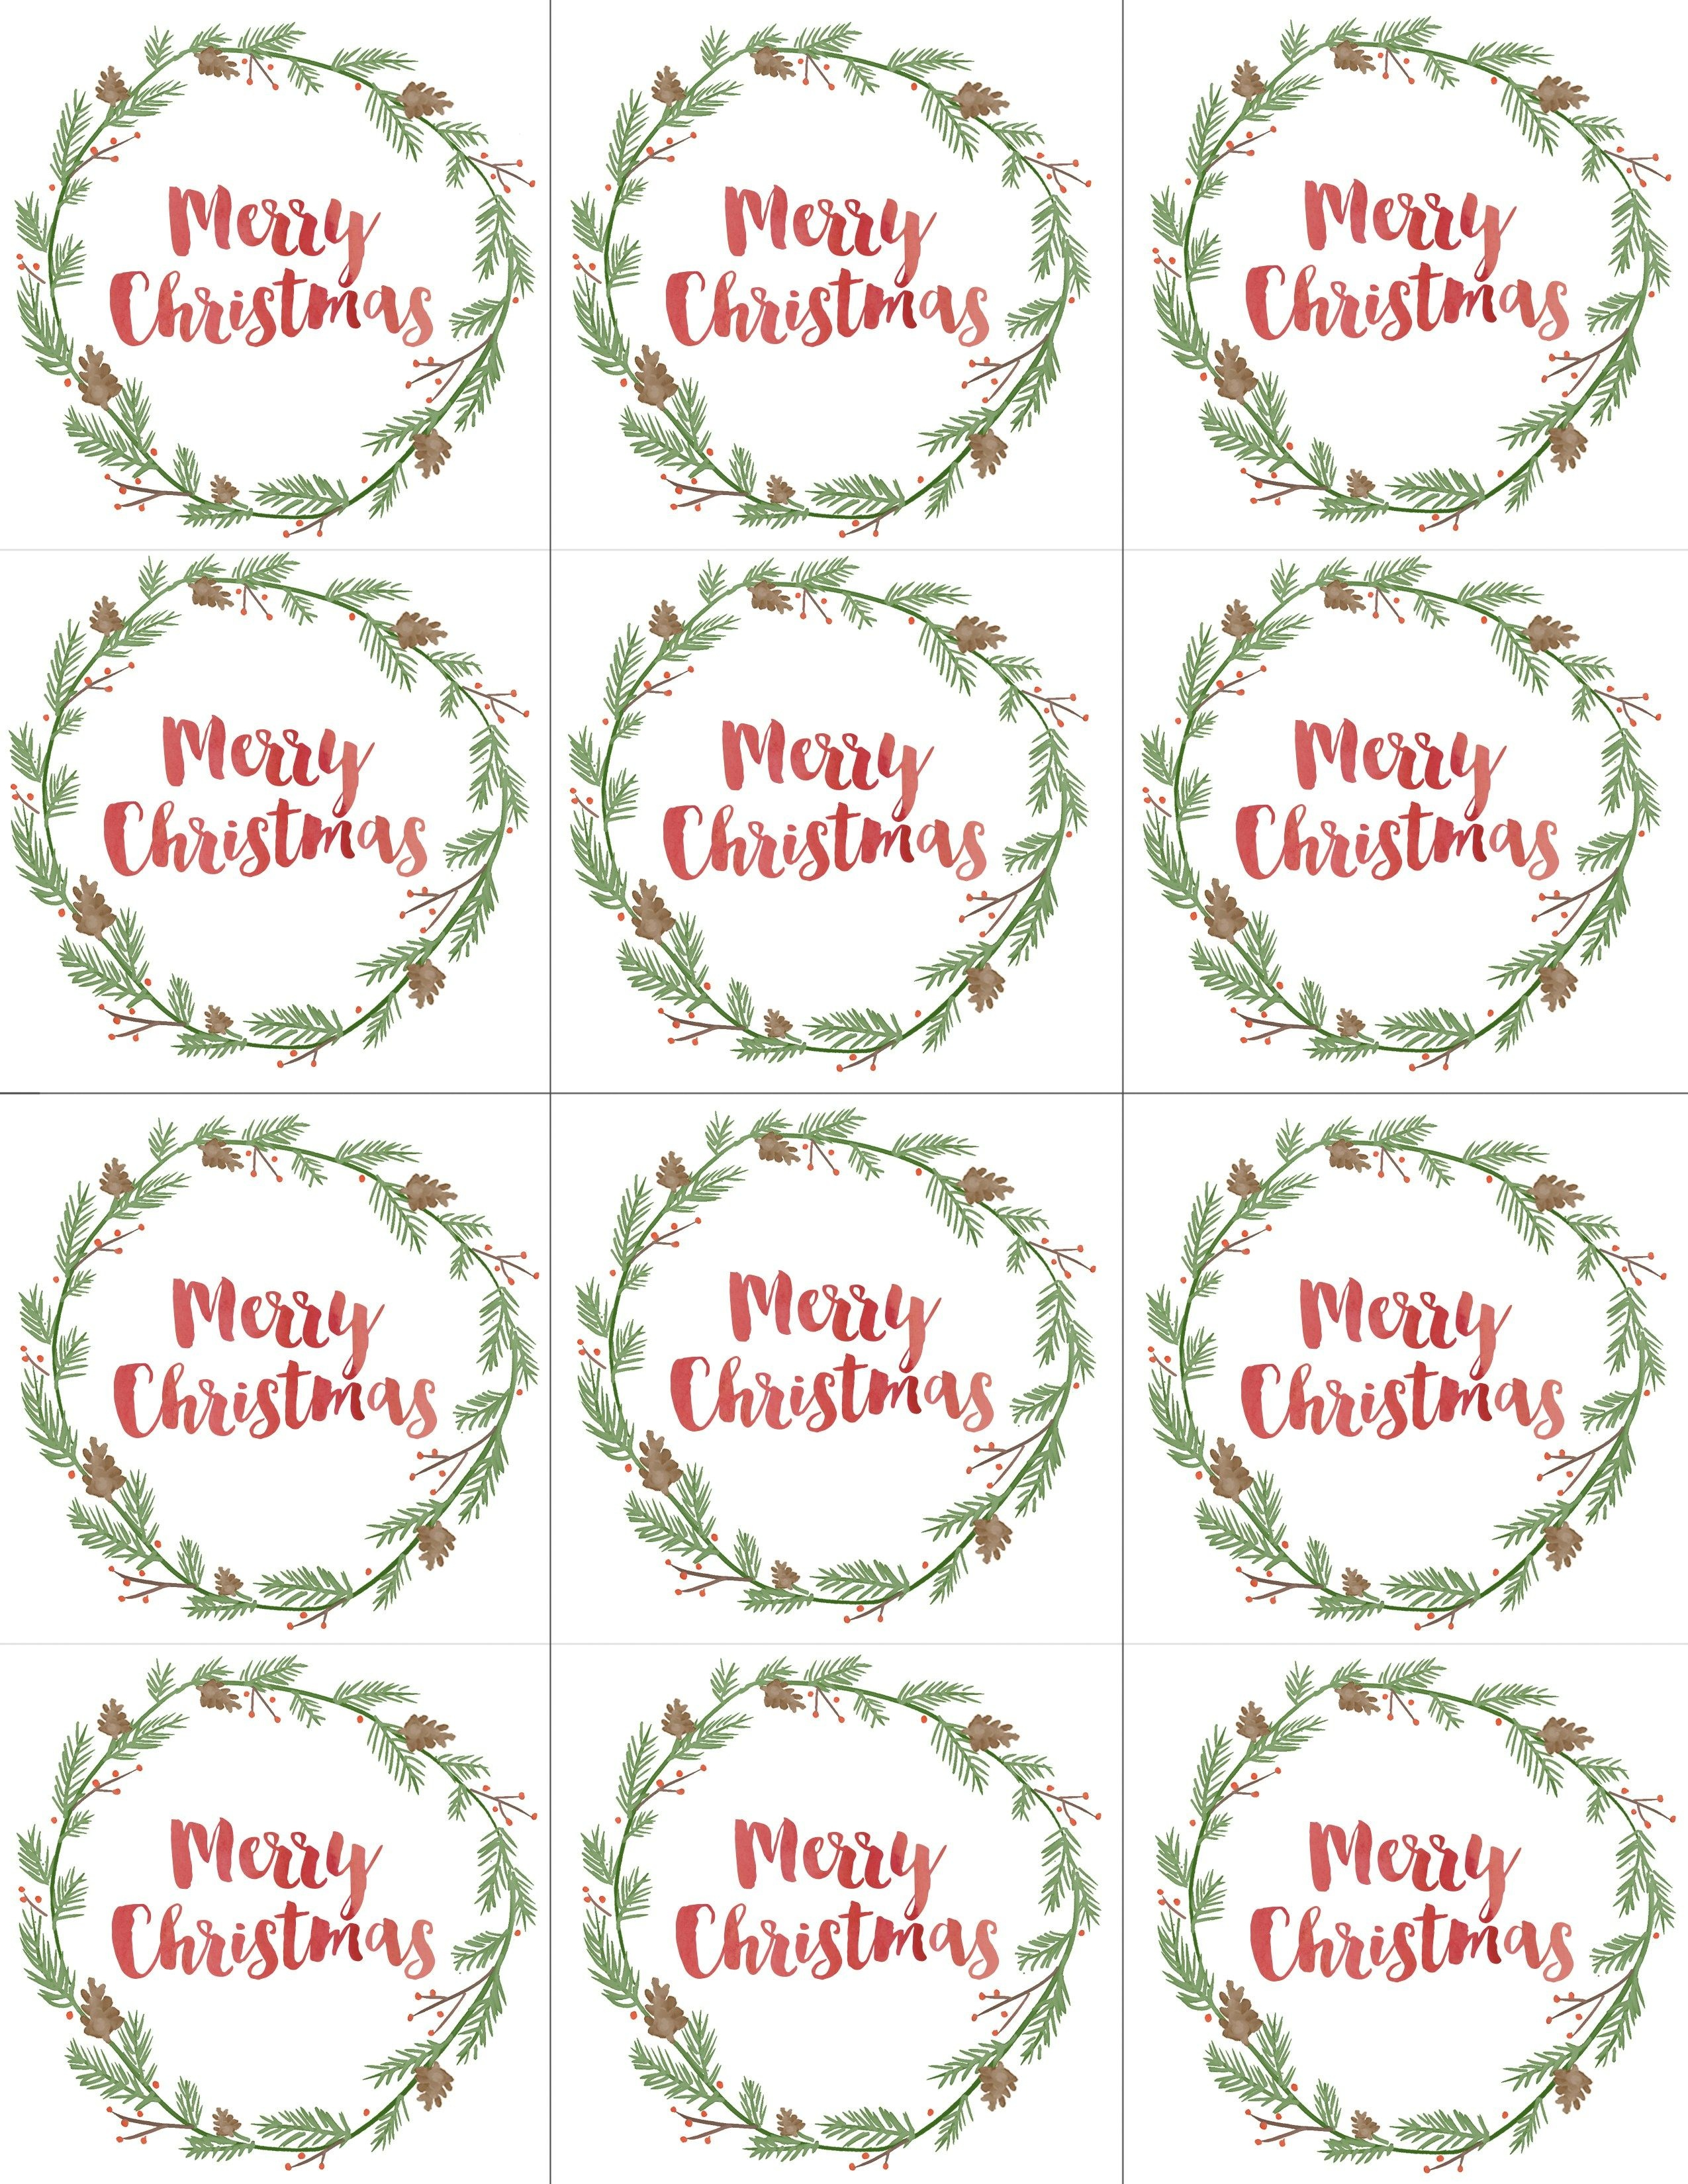 Hand Painted Gift Tags Free Printable | Christmas | Christmas Gift - Free Printable Christmas Price Tags